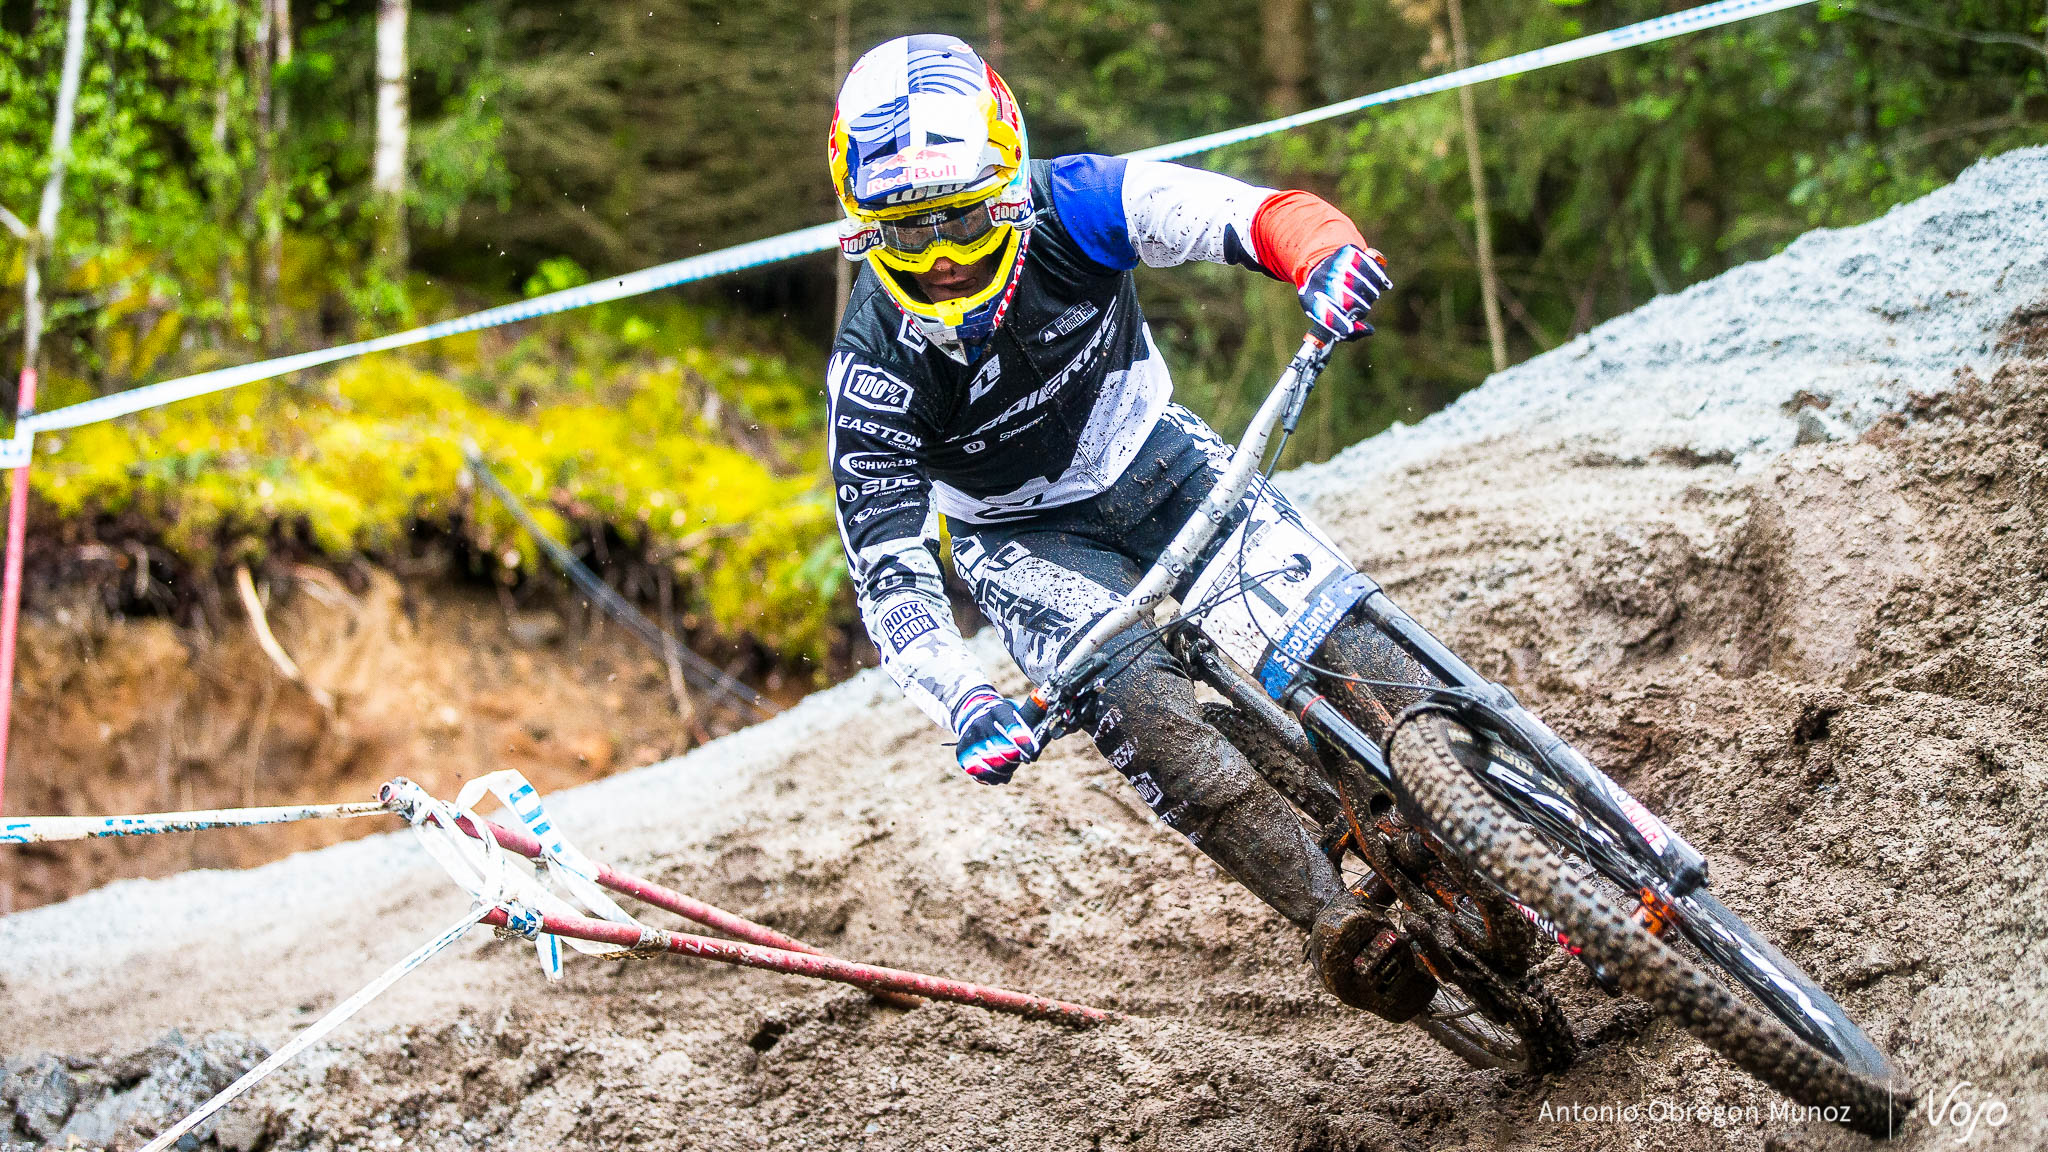 Fort_William_UCI_World_Cup_DH_2015_(qualif_Hommes)_(LoicBruni)_Copyright_Antonio_Obregon_VojoMag-5